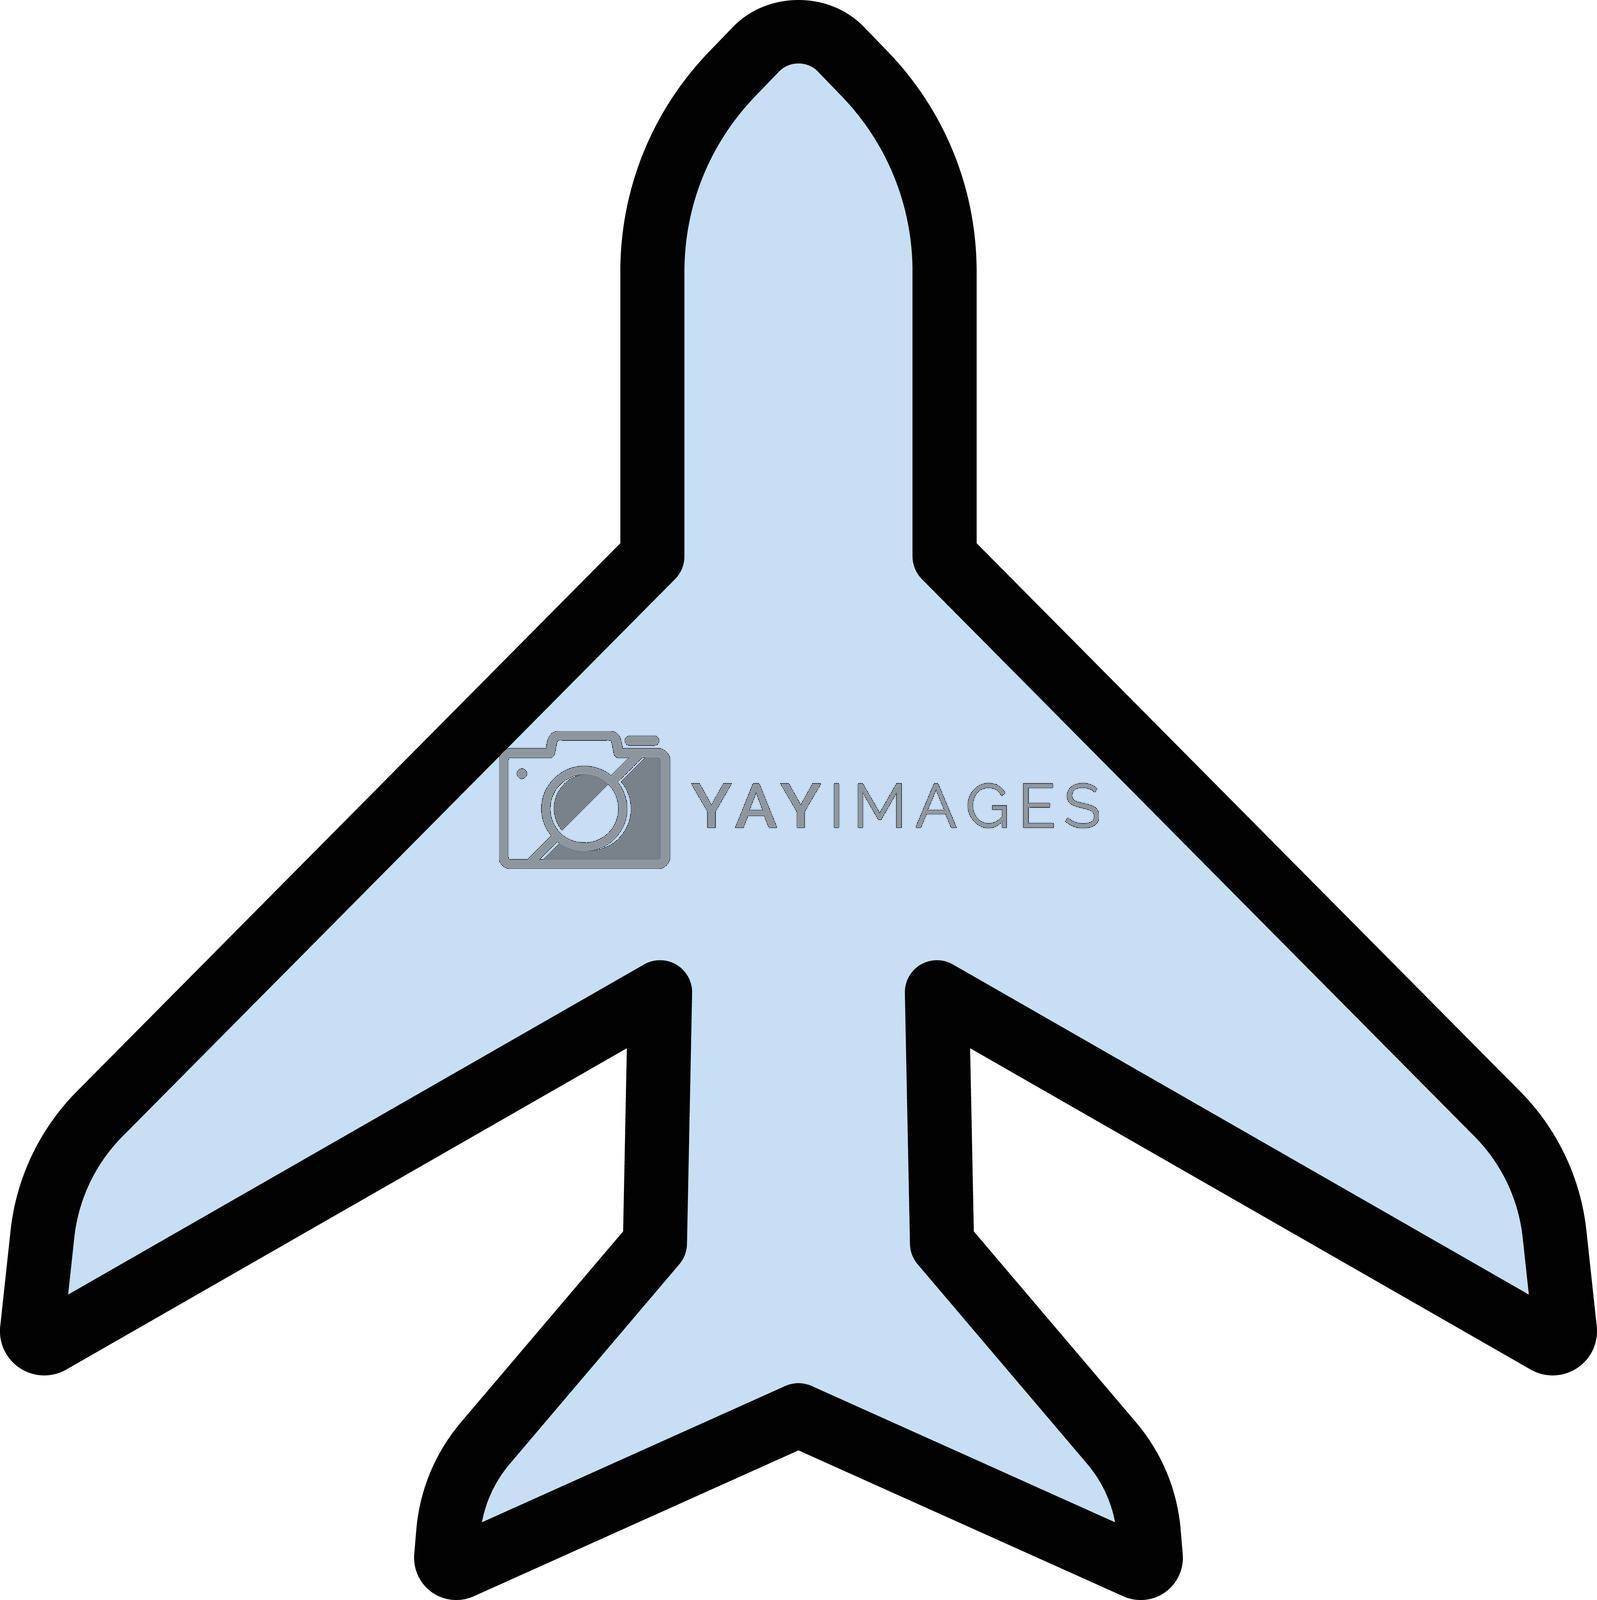 Royalty free image of airplane by vectorstall